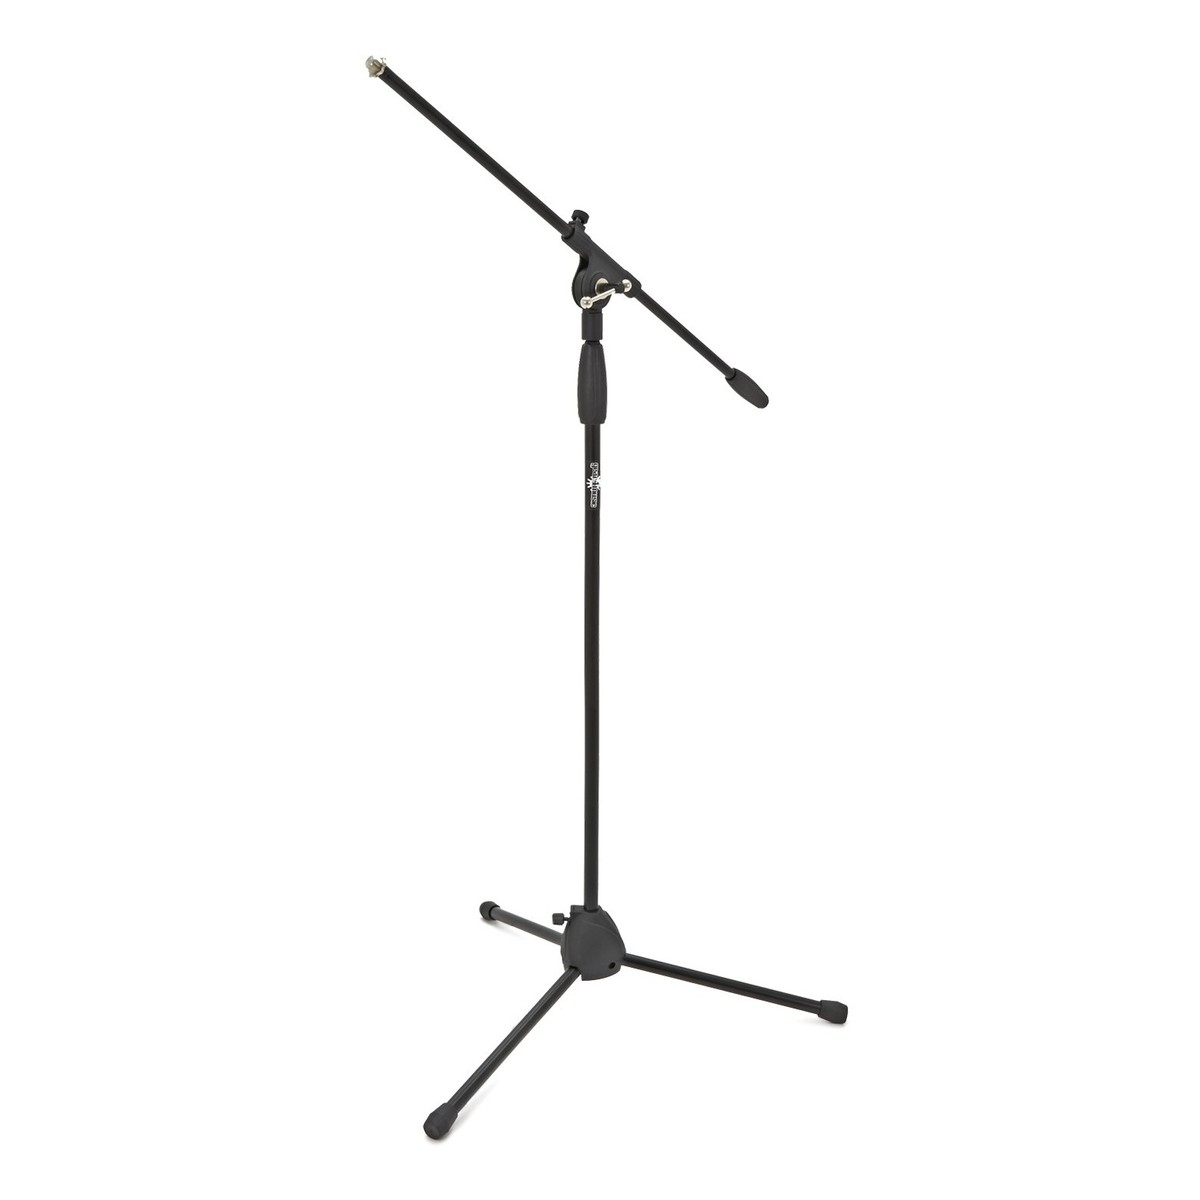 Shure Sm58 Dynamic Vocal Mic With Stand And Cable At Gear4music Sm57 Wiring Diagram Loading Zoom